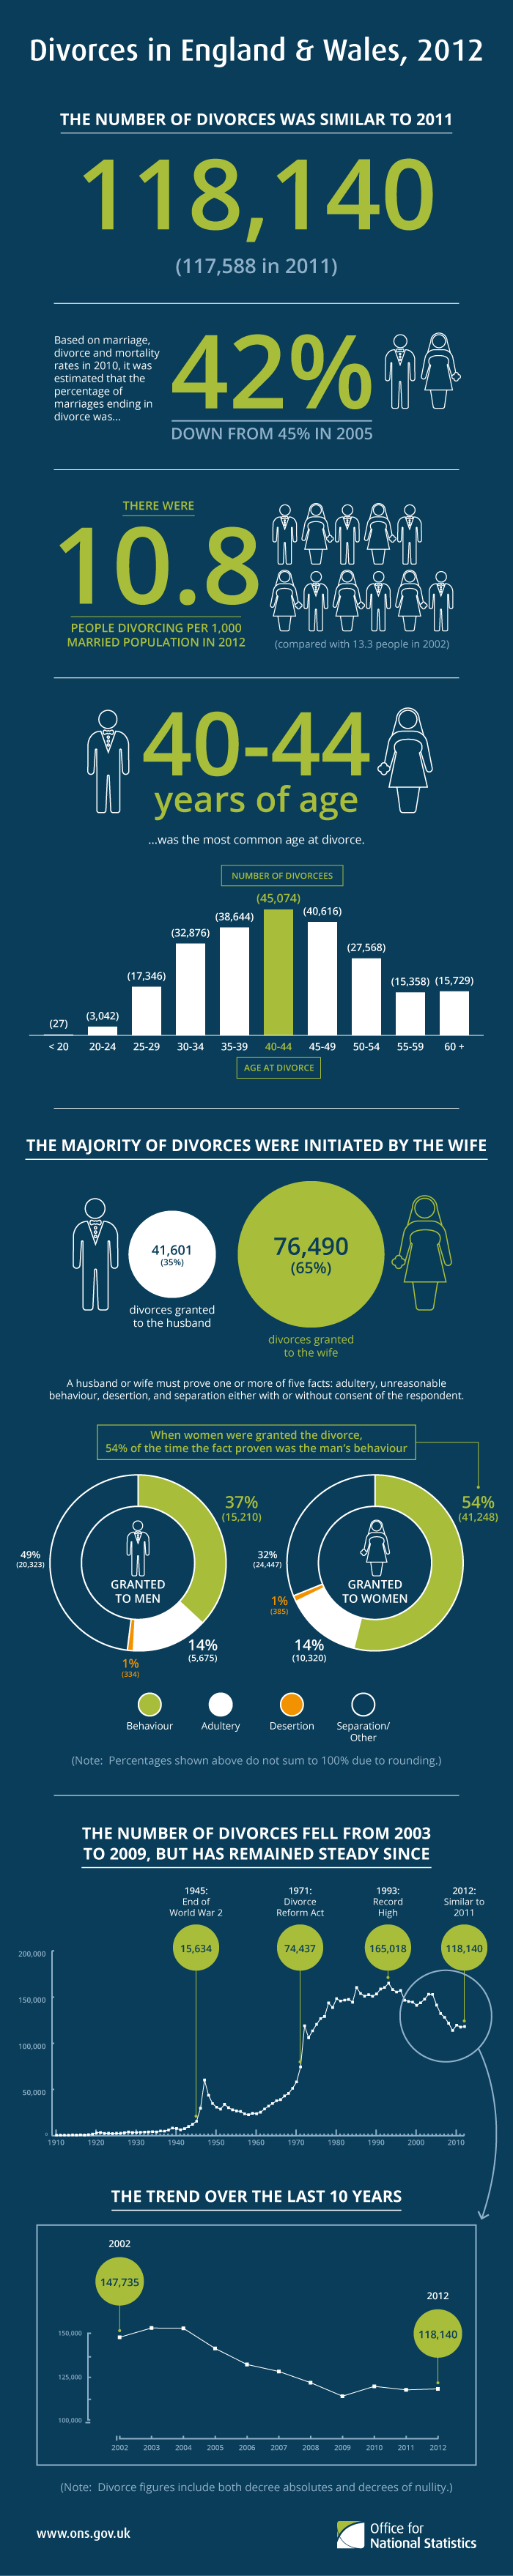 Divorces in England and Wales 2012